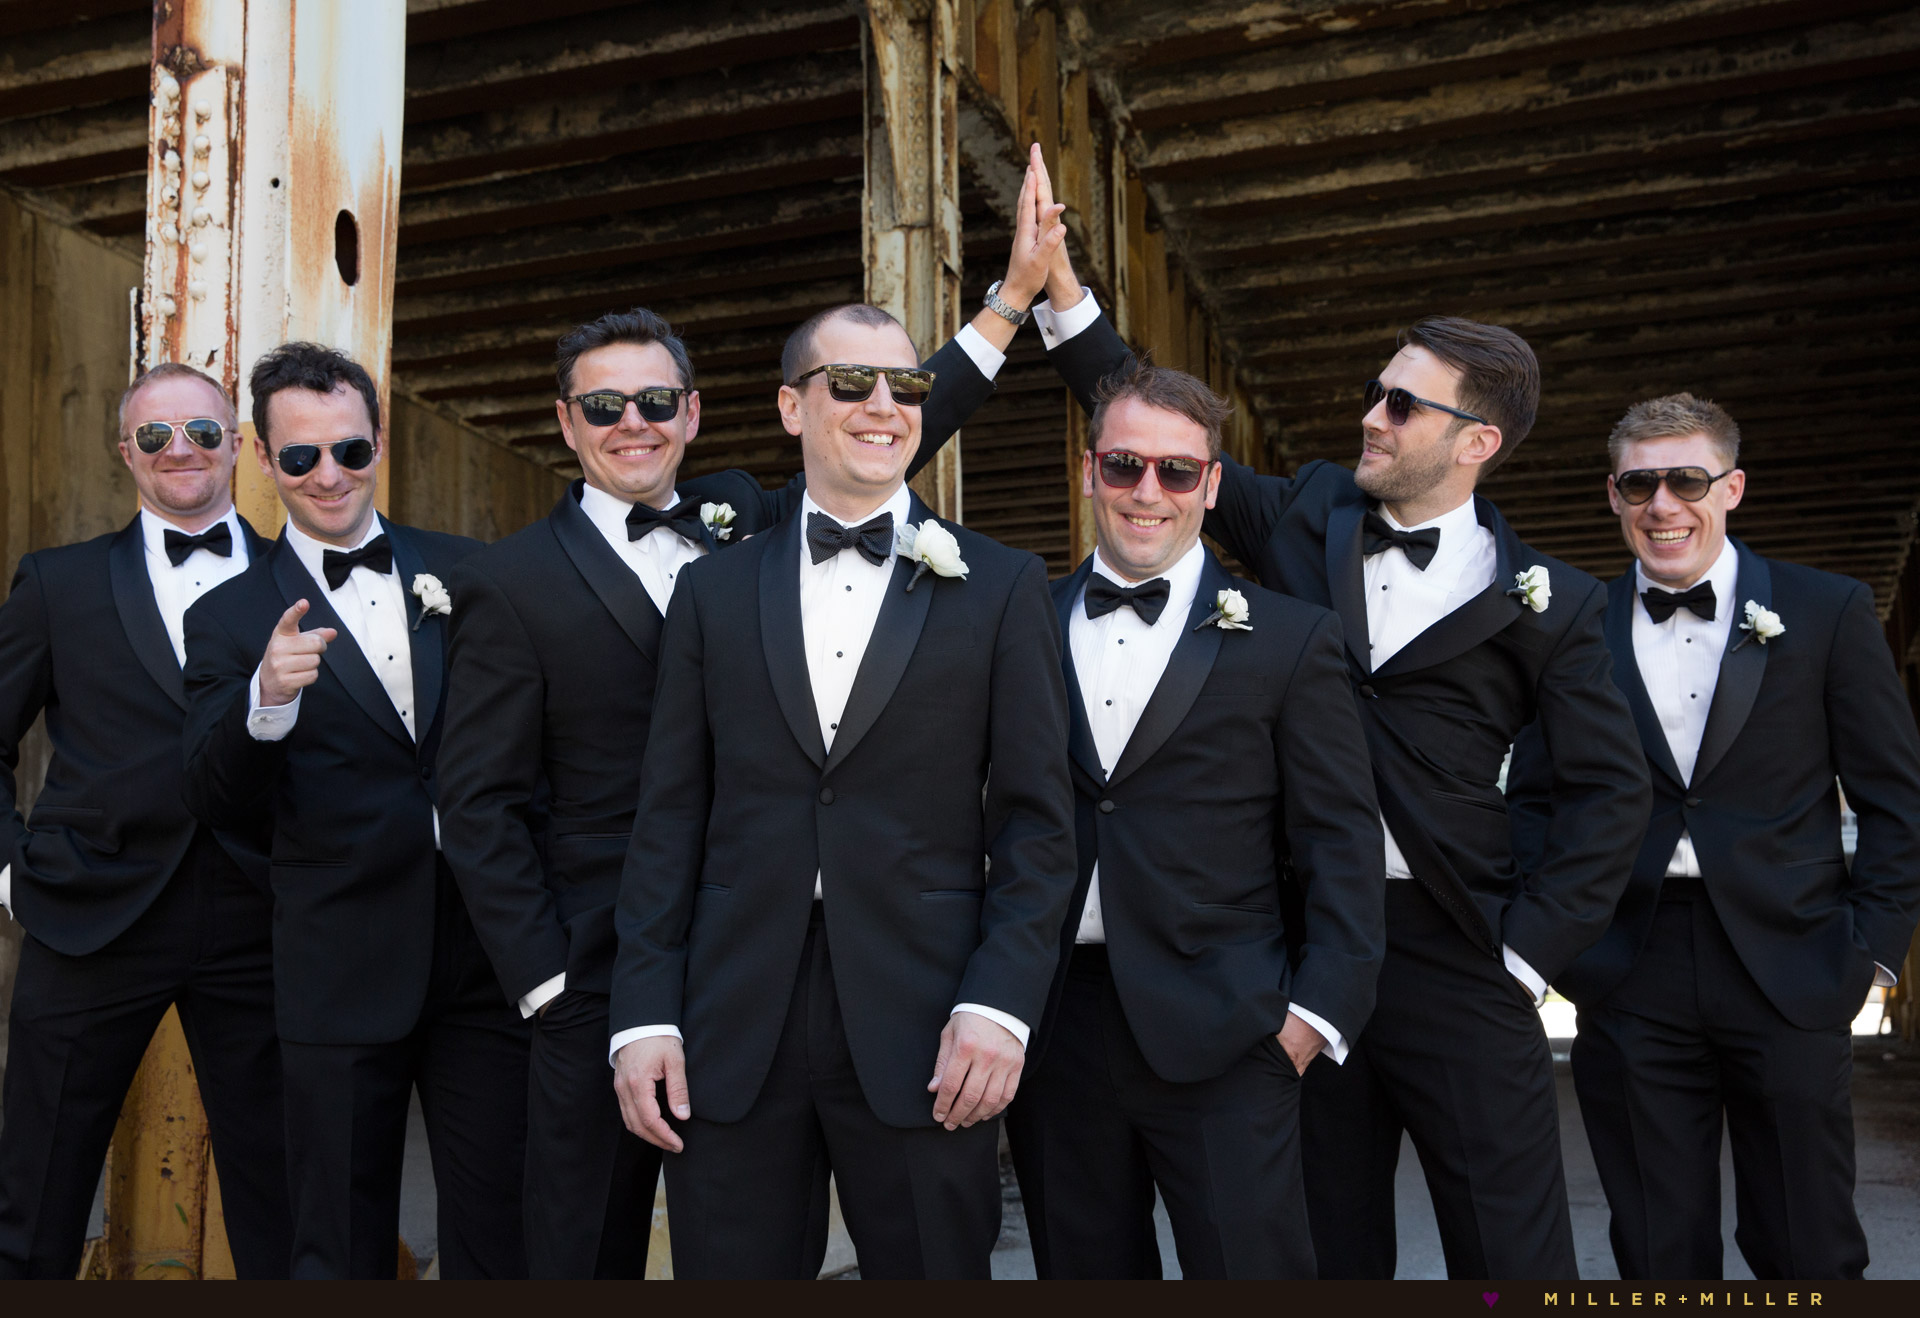 groom-groomsmen-sunglasses